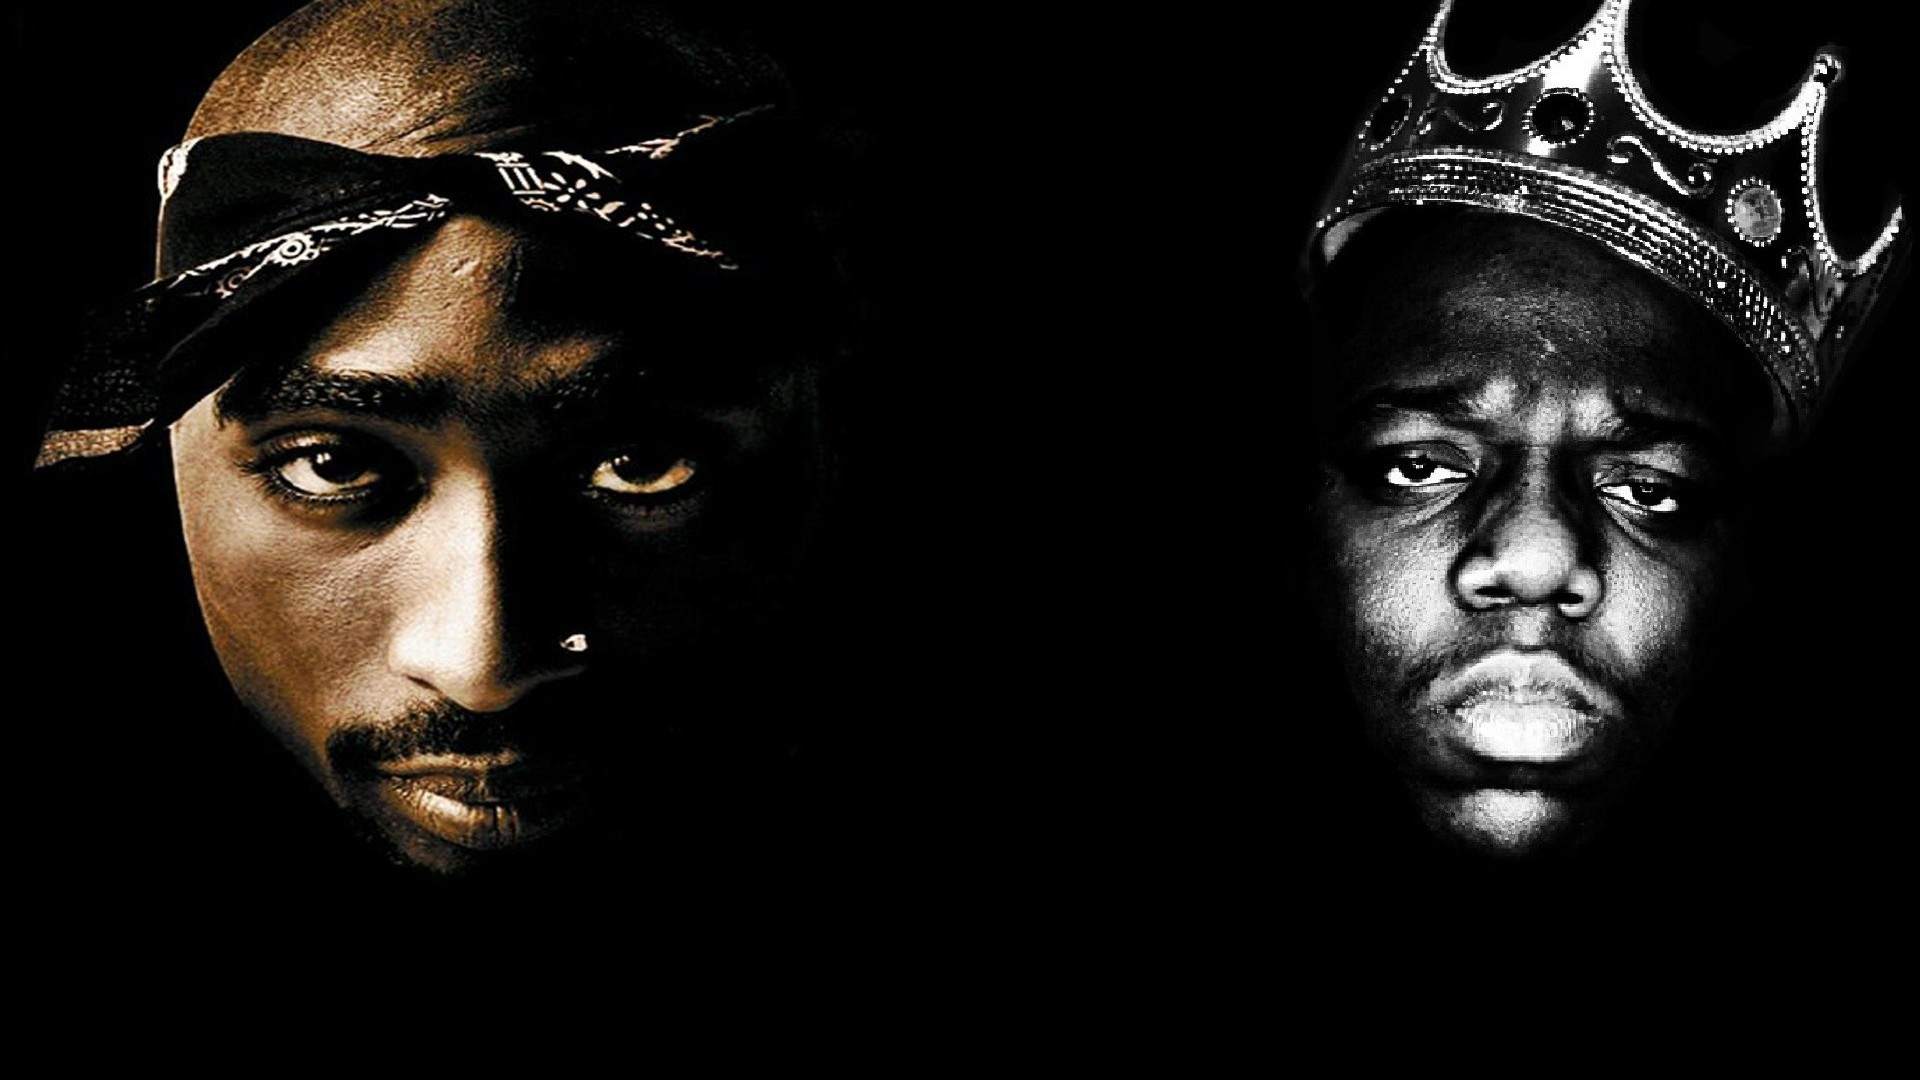 1920x1080 TUPAC BIGGIE SMALLS gangsta rapper rap hip hop f wallpaper |  .